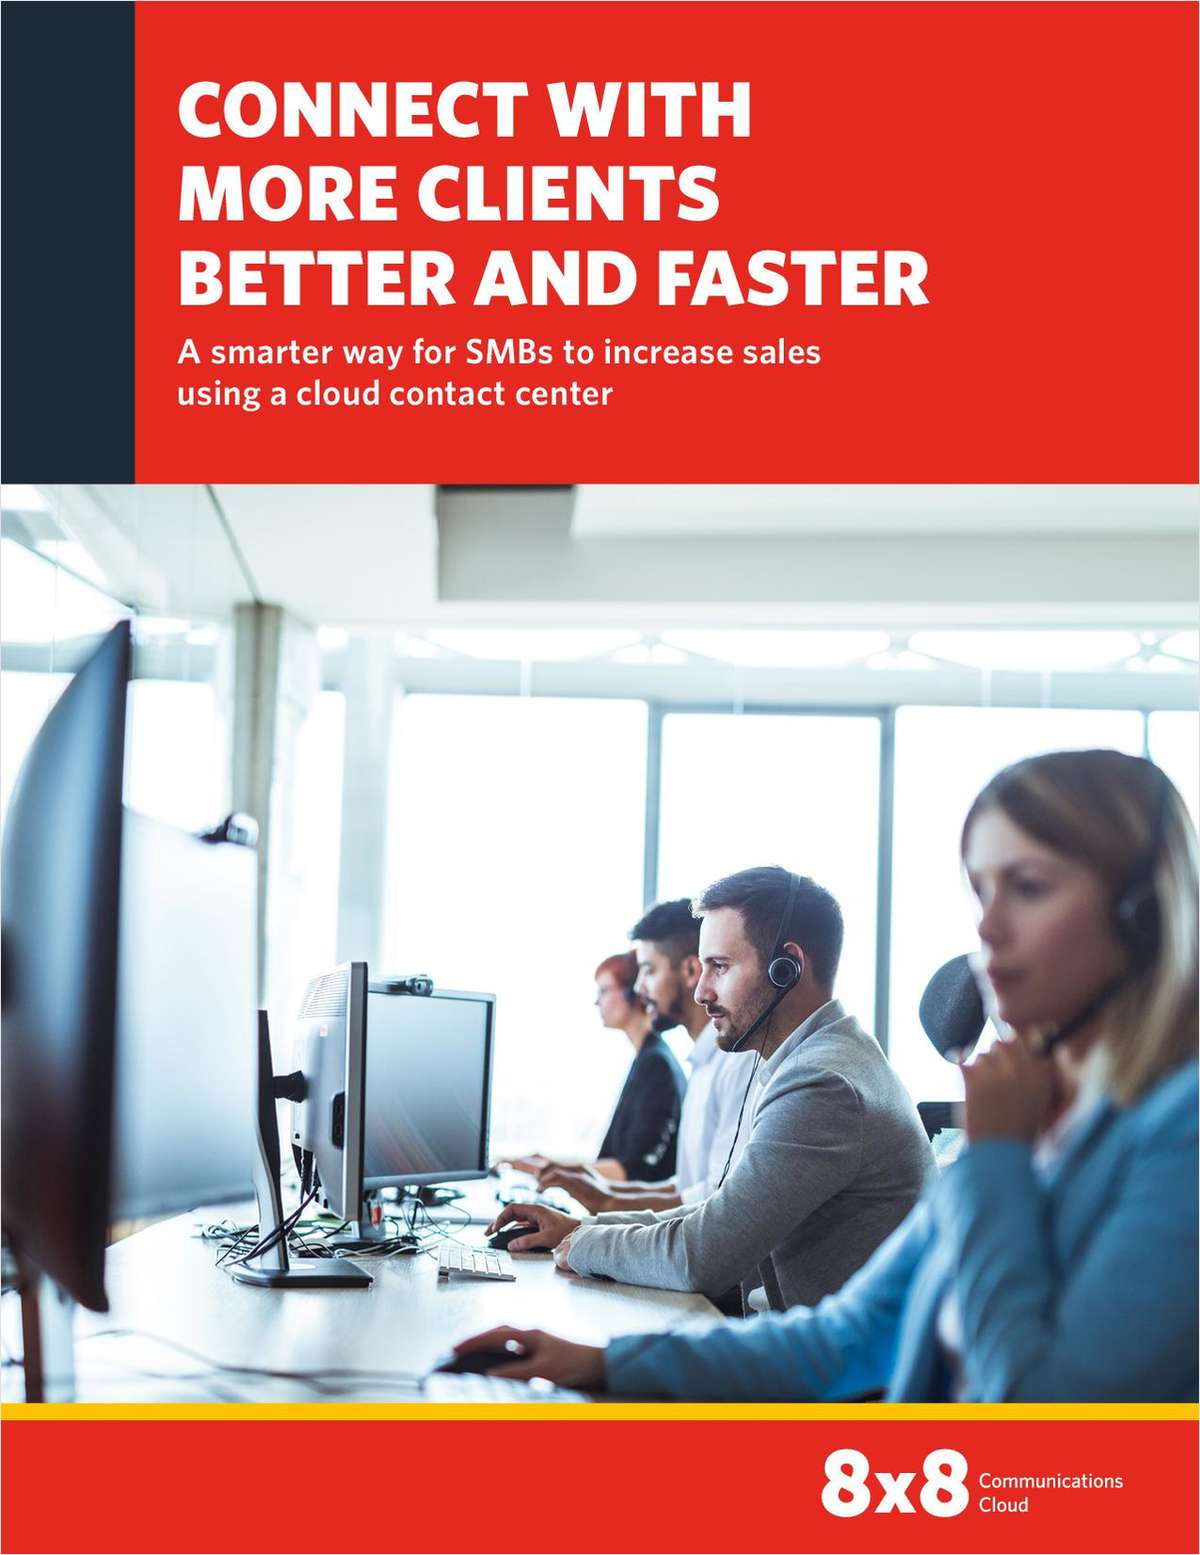 Connect With More Clients Better and Faster: A Smarter Way for SMBs to Increase Sales Using a Cloud Contact Center